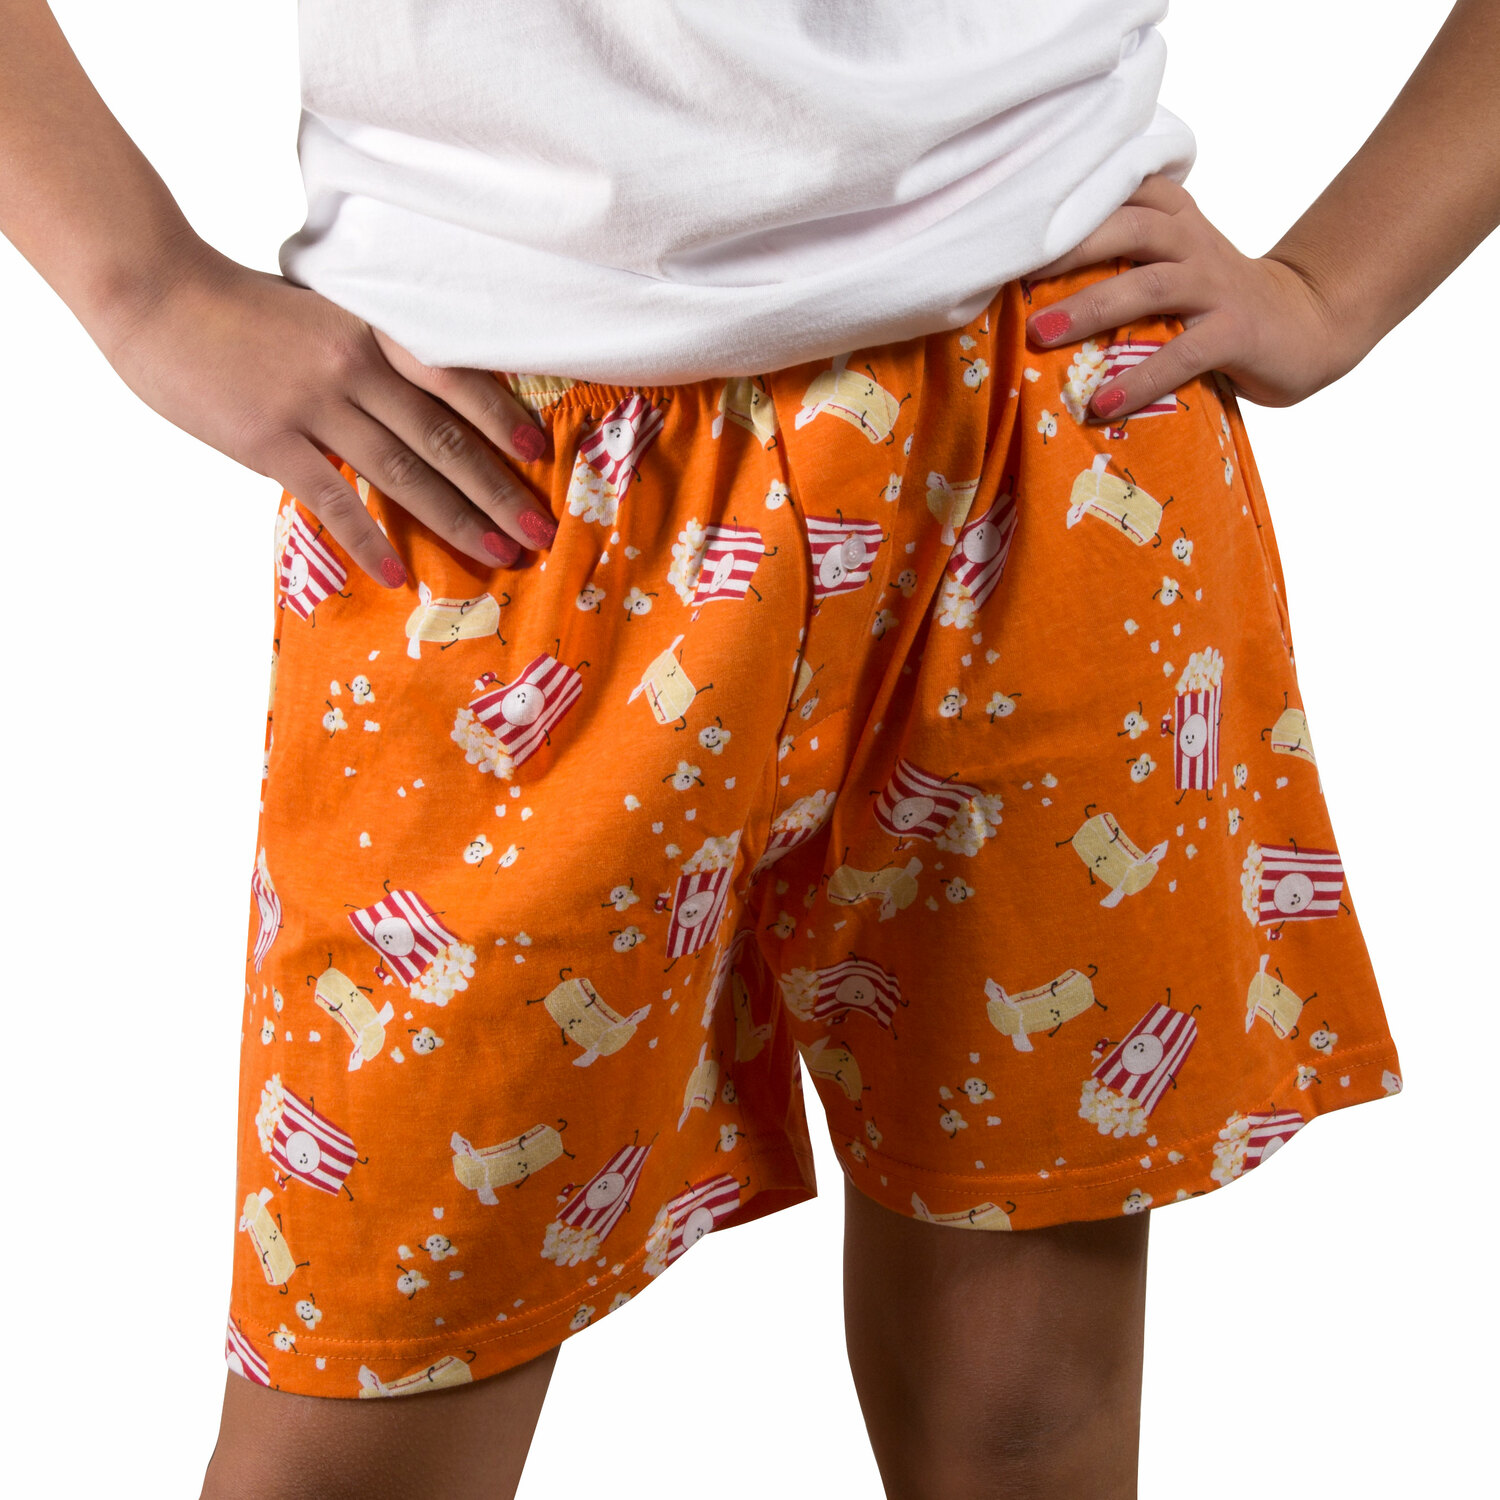 Popcorn and Butter by Late Night Snacks - Popcorn and Butter - XS Orange Unisex Boxers